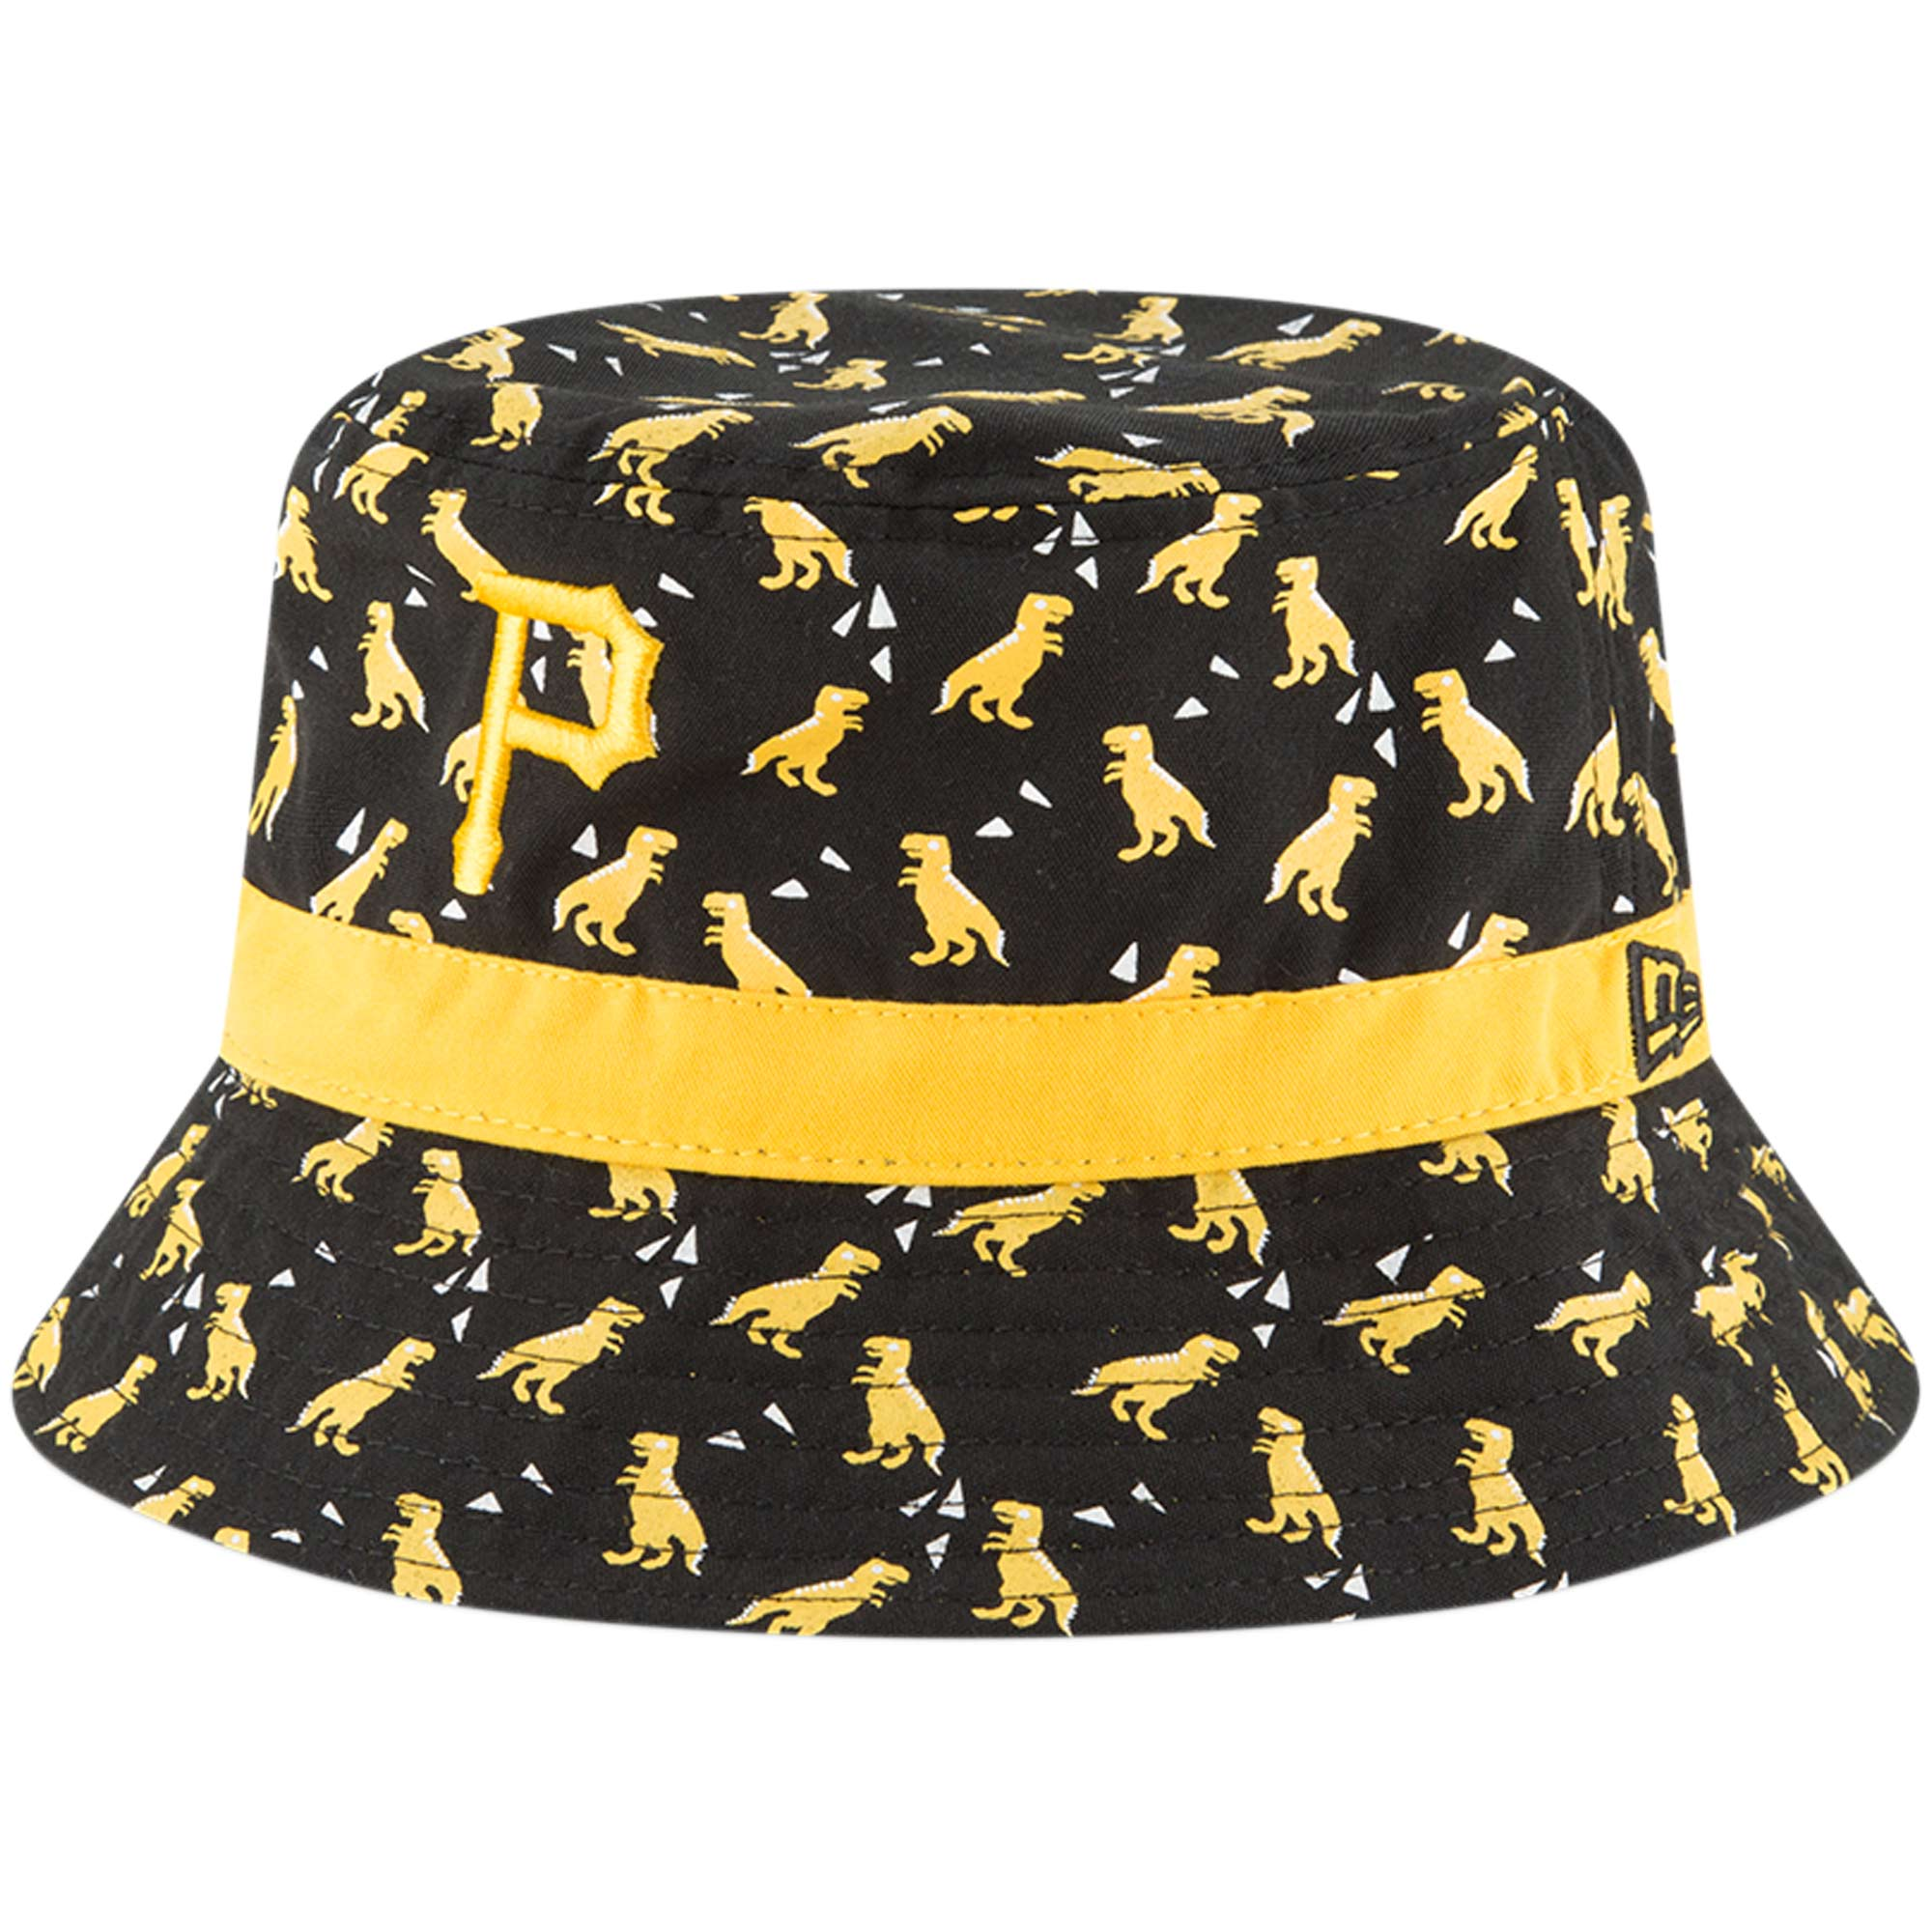 83600a1f4ce Pittsburgh Pirates New Era Infant Dino Bucket Hat - Black - OSFA -  Walmart.com